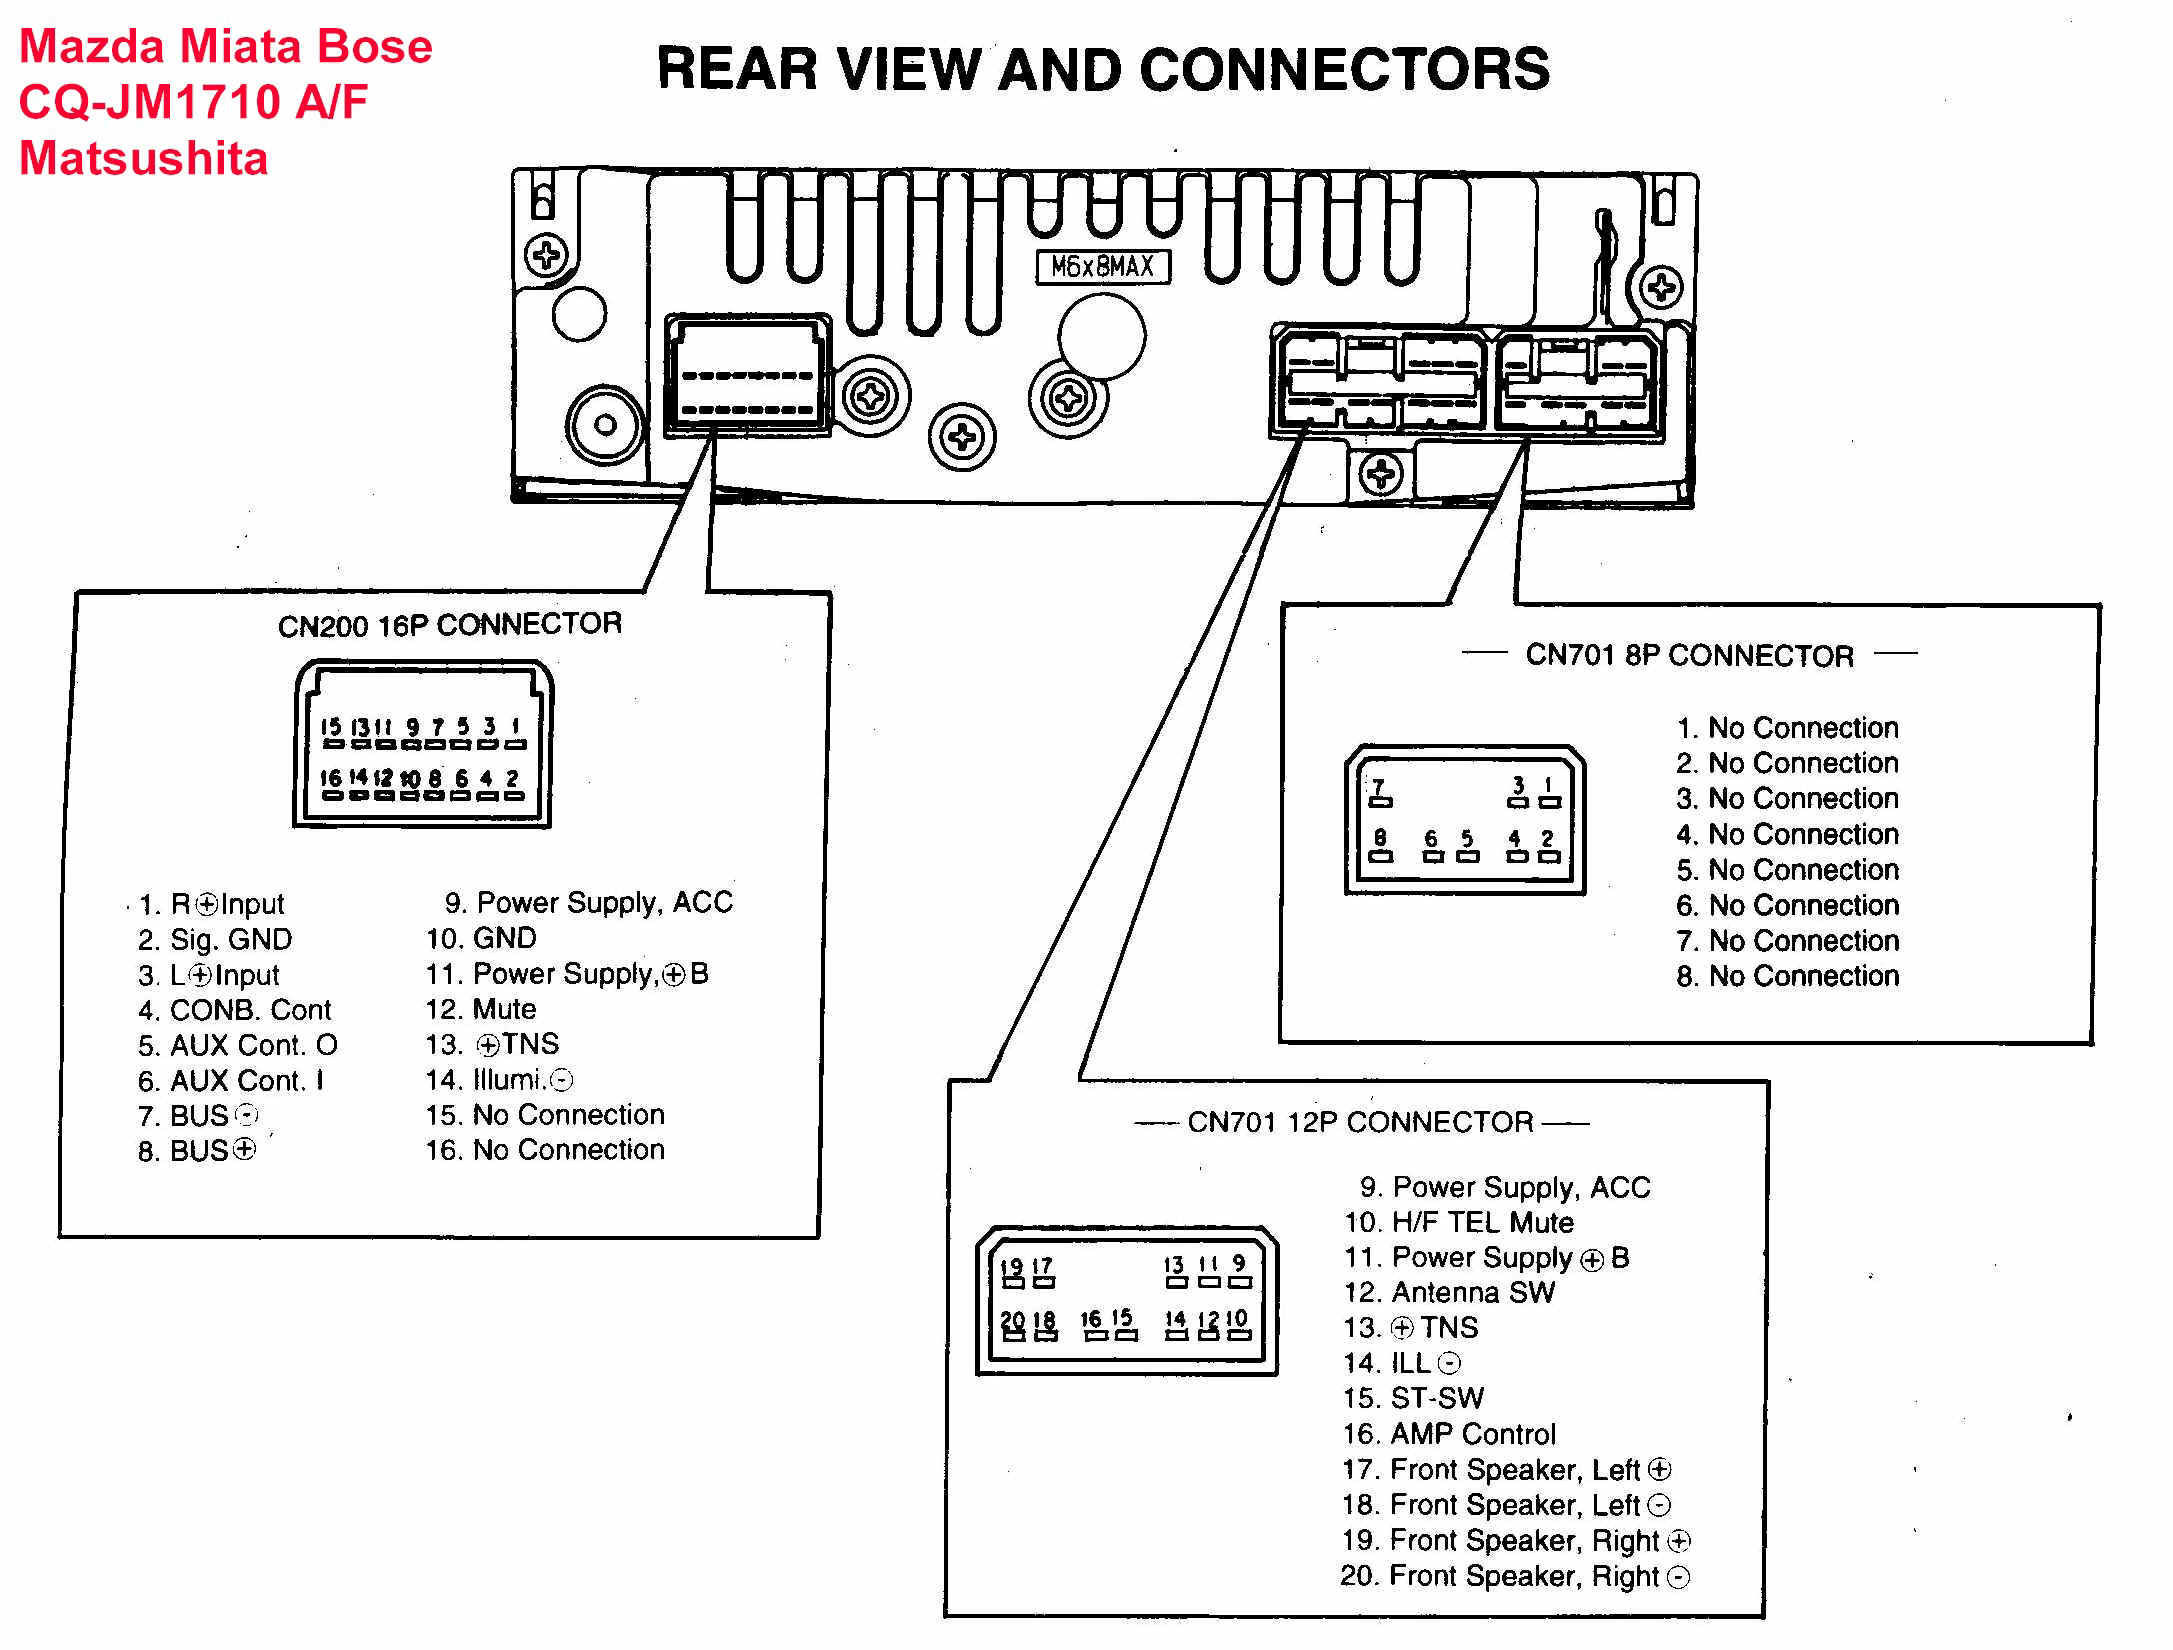 car stereo wiring diagram car wiring diagrams wireharnessmazda022001 car stereo wiring diagram wireharnessmazda022001